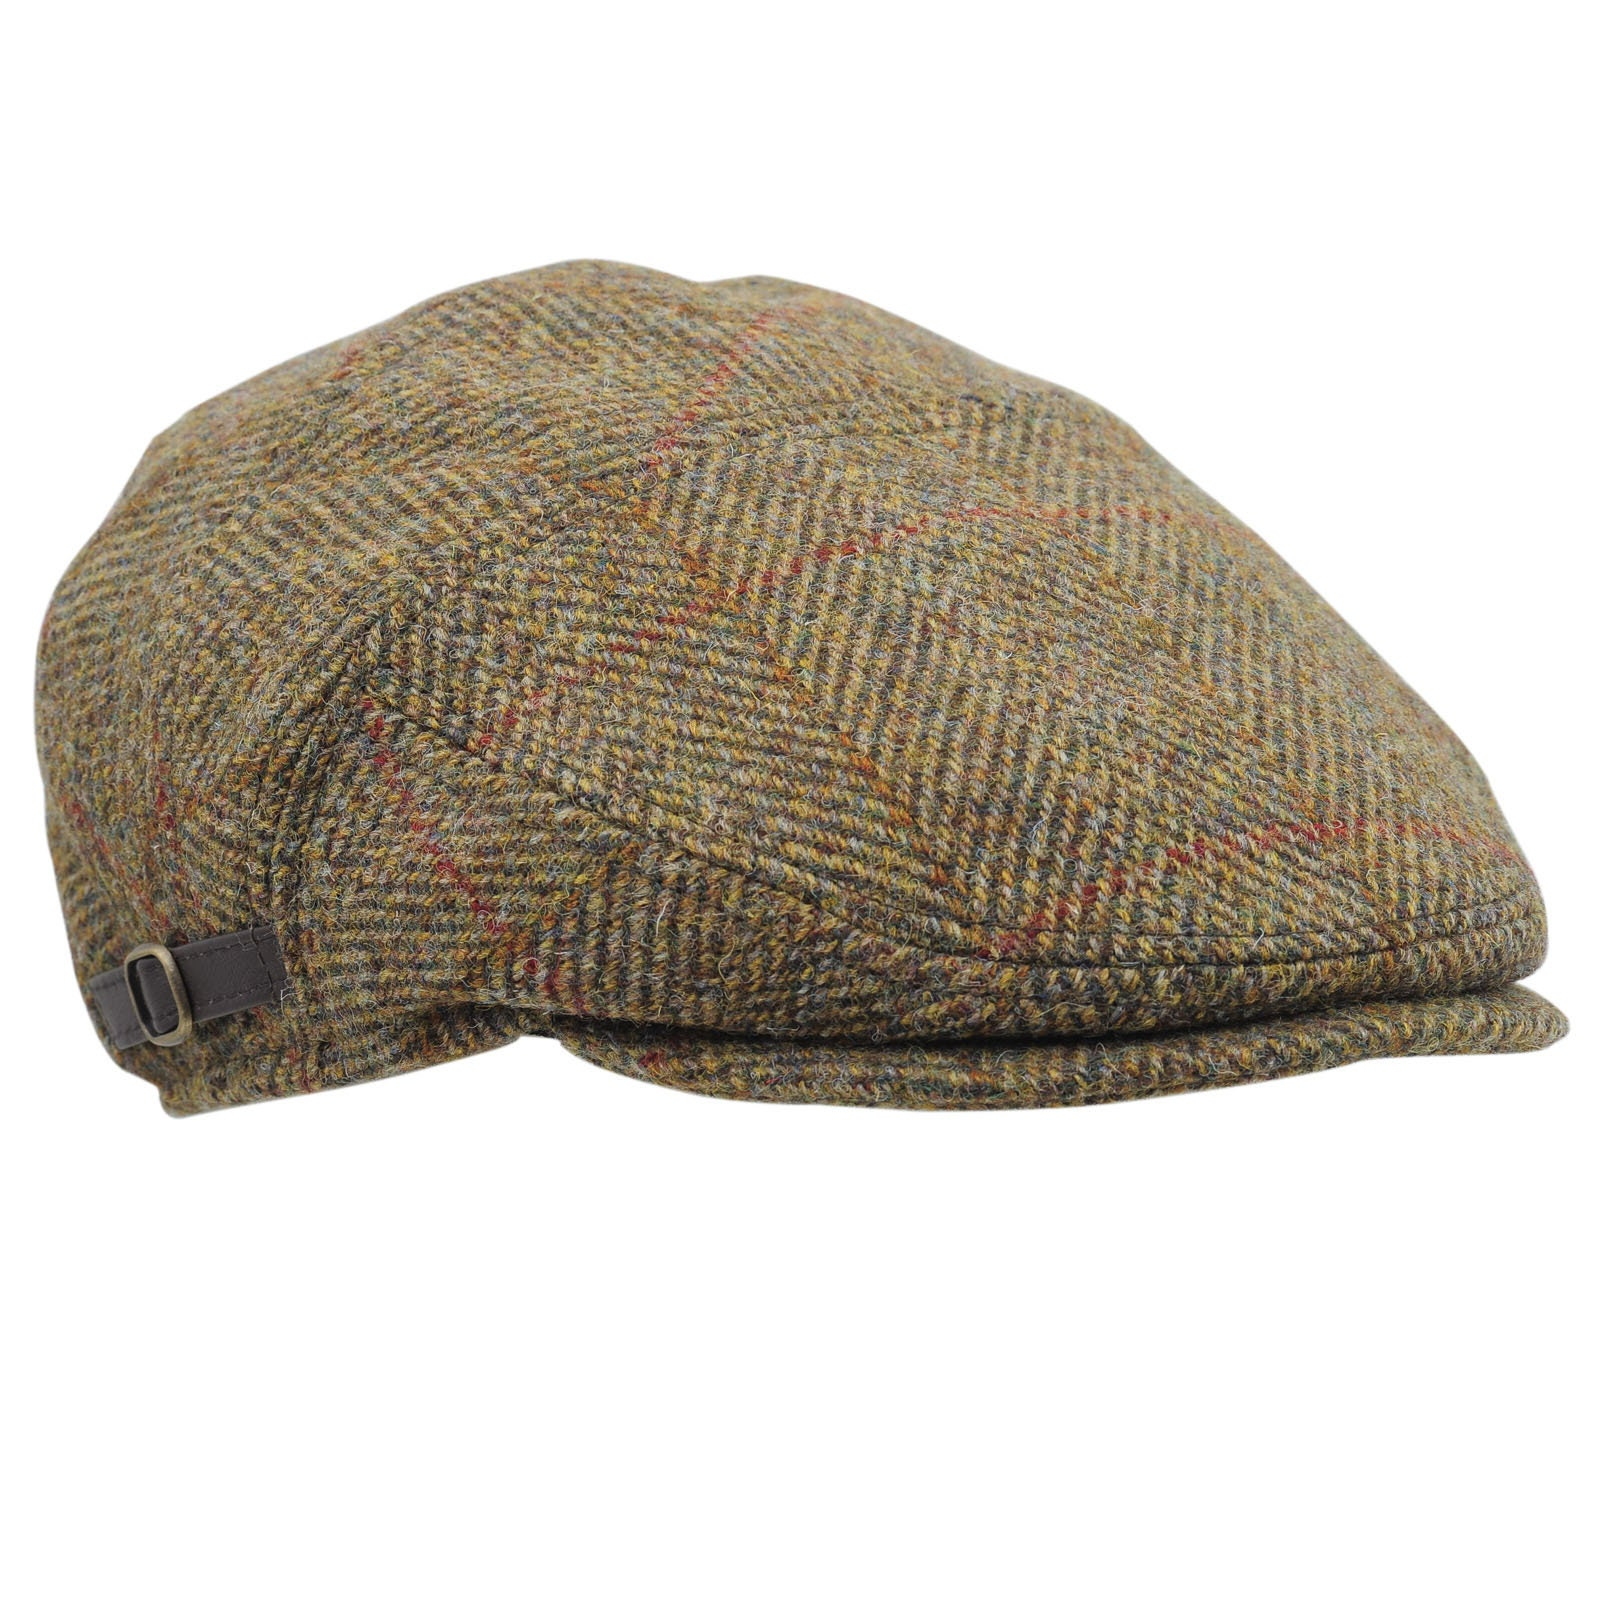 366c606282d17 ABERDEEN Genuine Scottish Harris Tweed Pure Wool Flat Cap